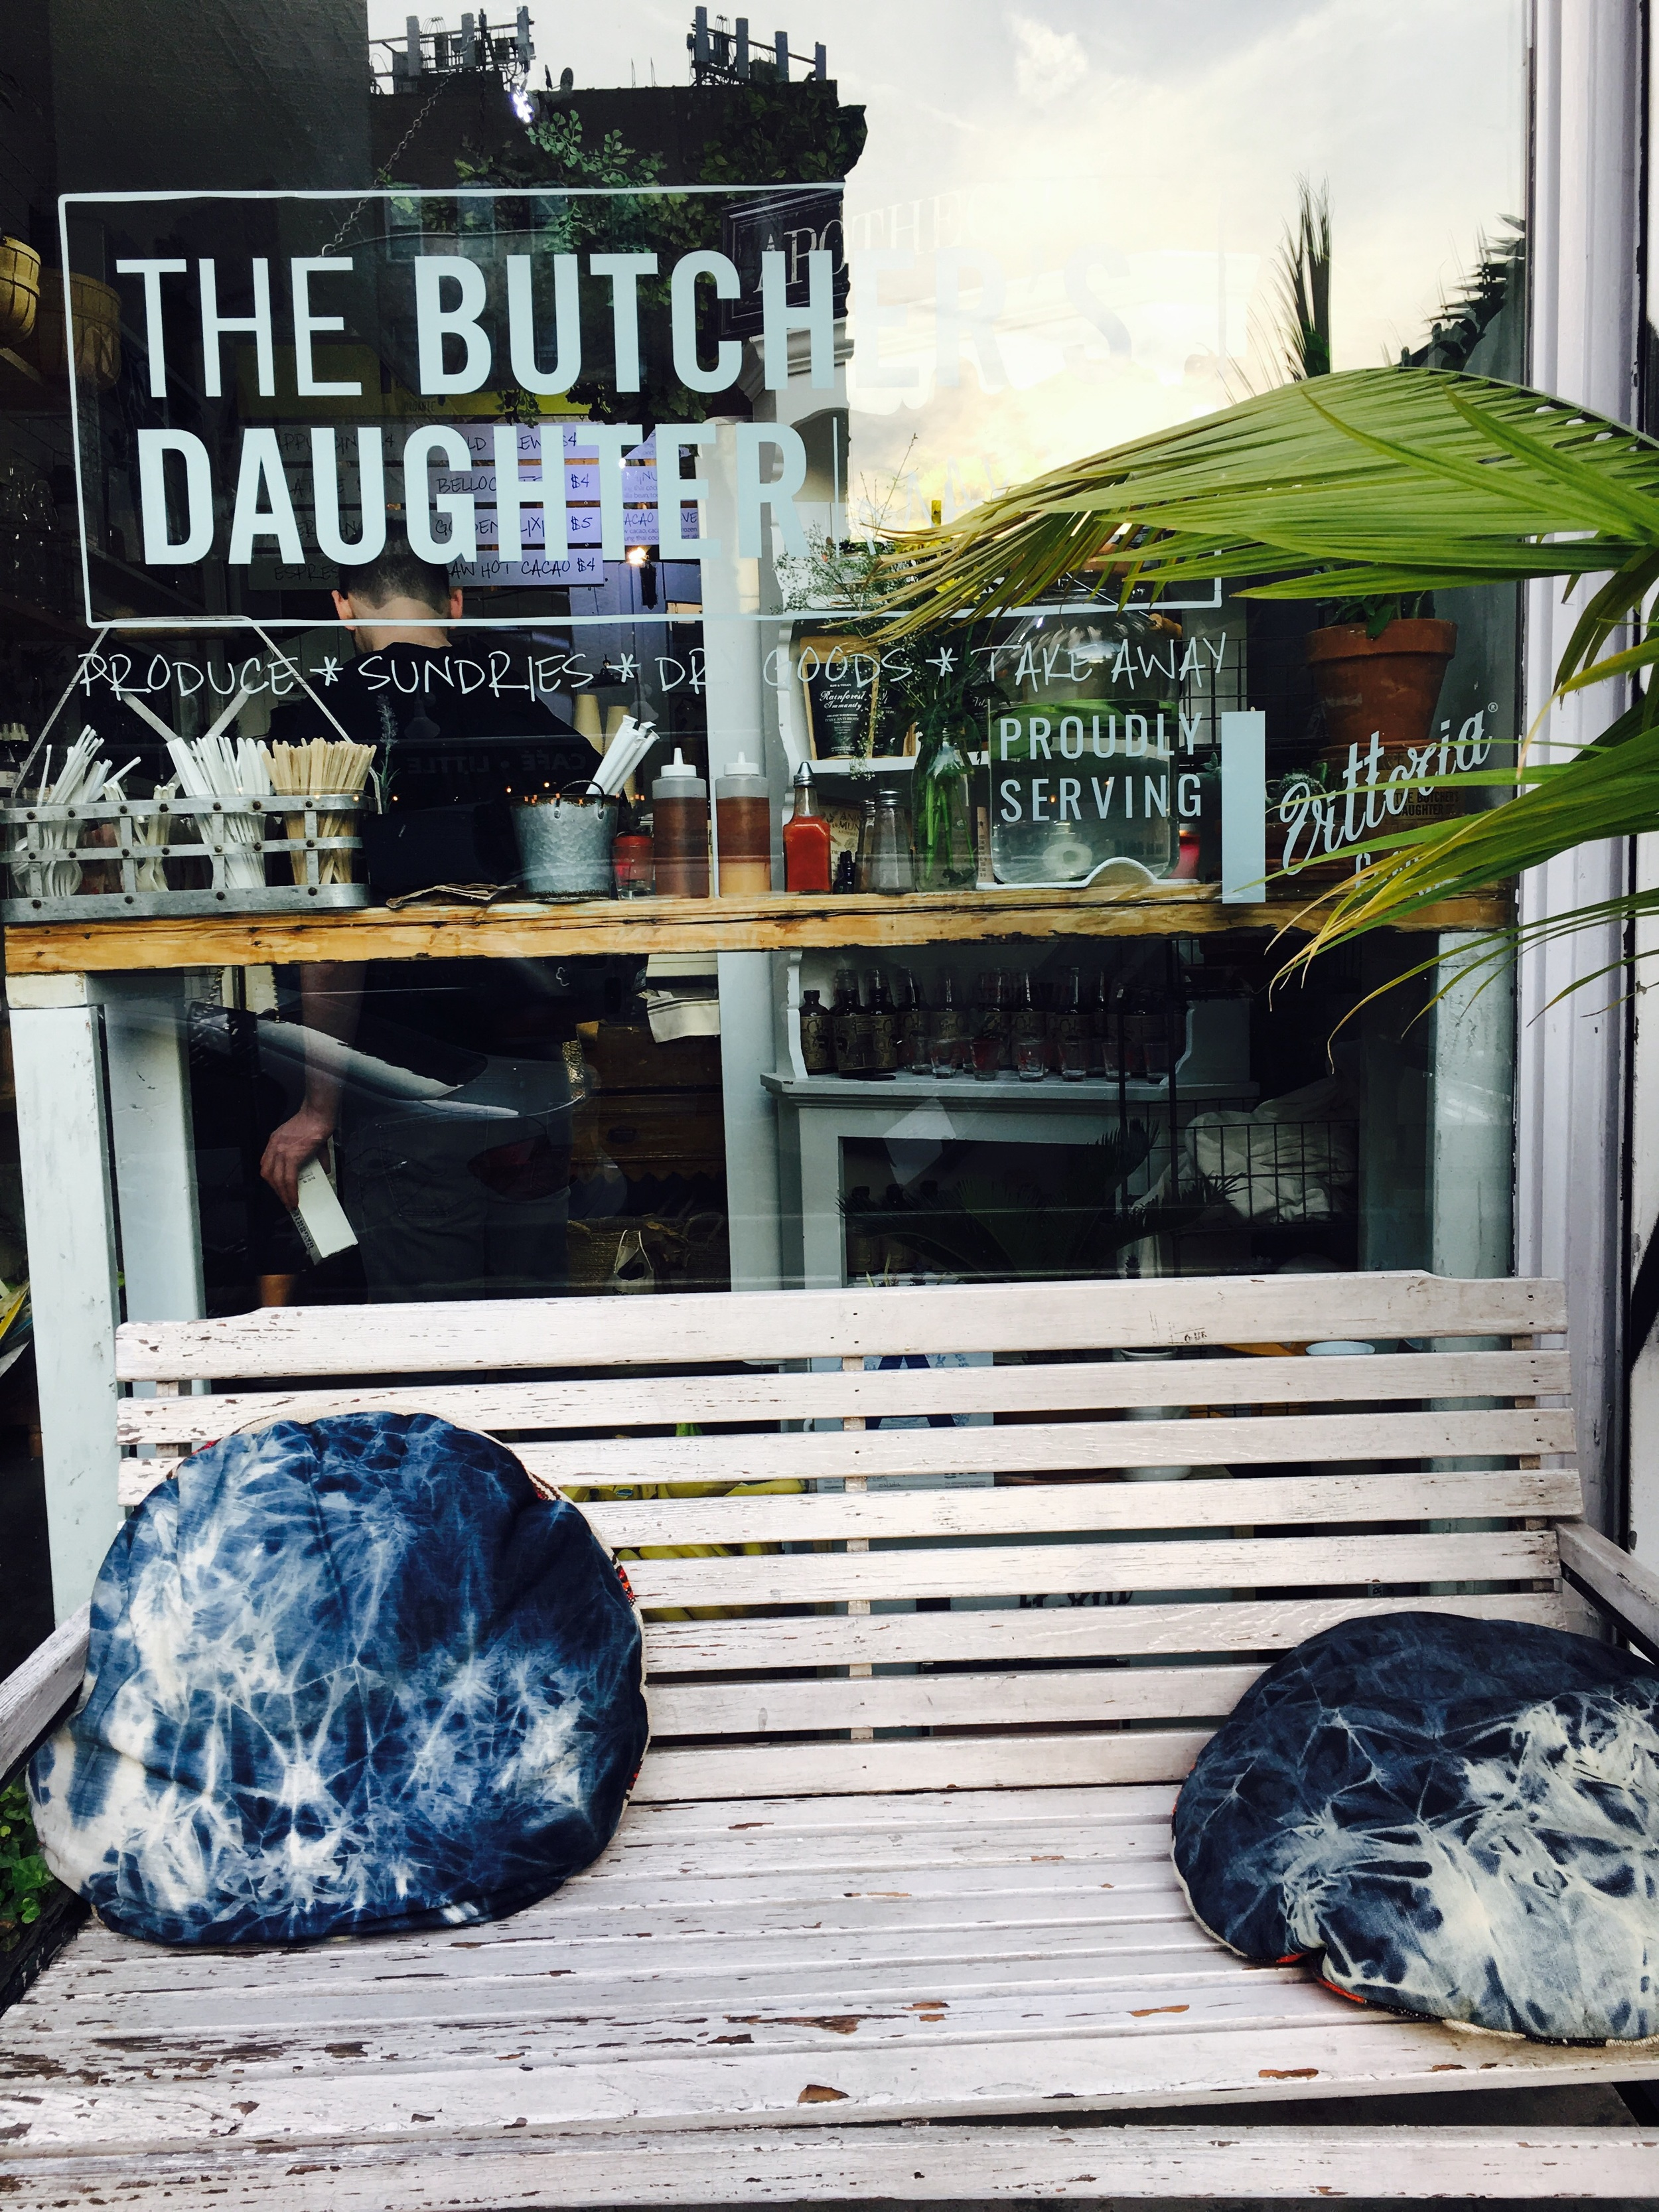 Great little shop with coffee, sundries and more serves the local hood.